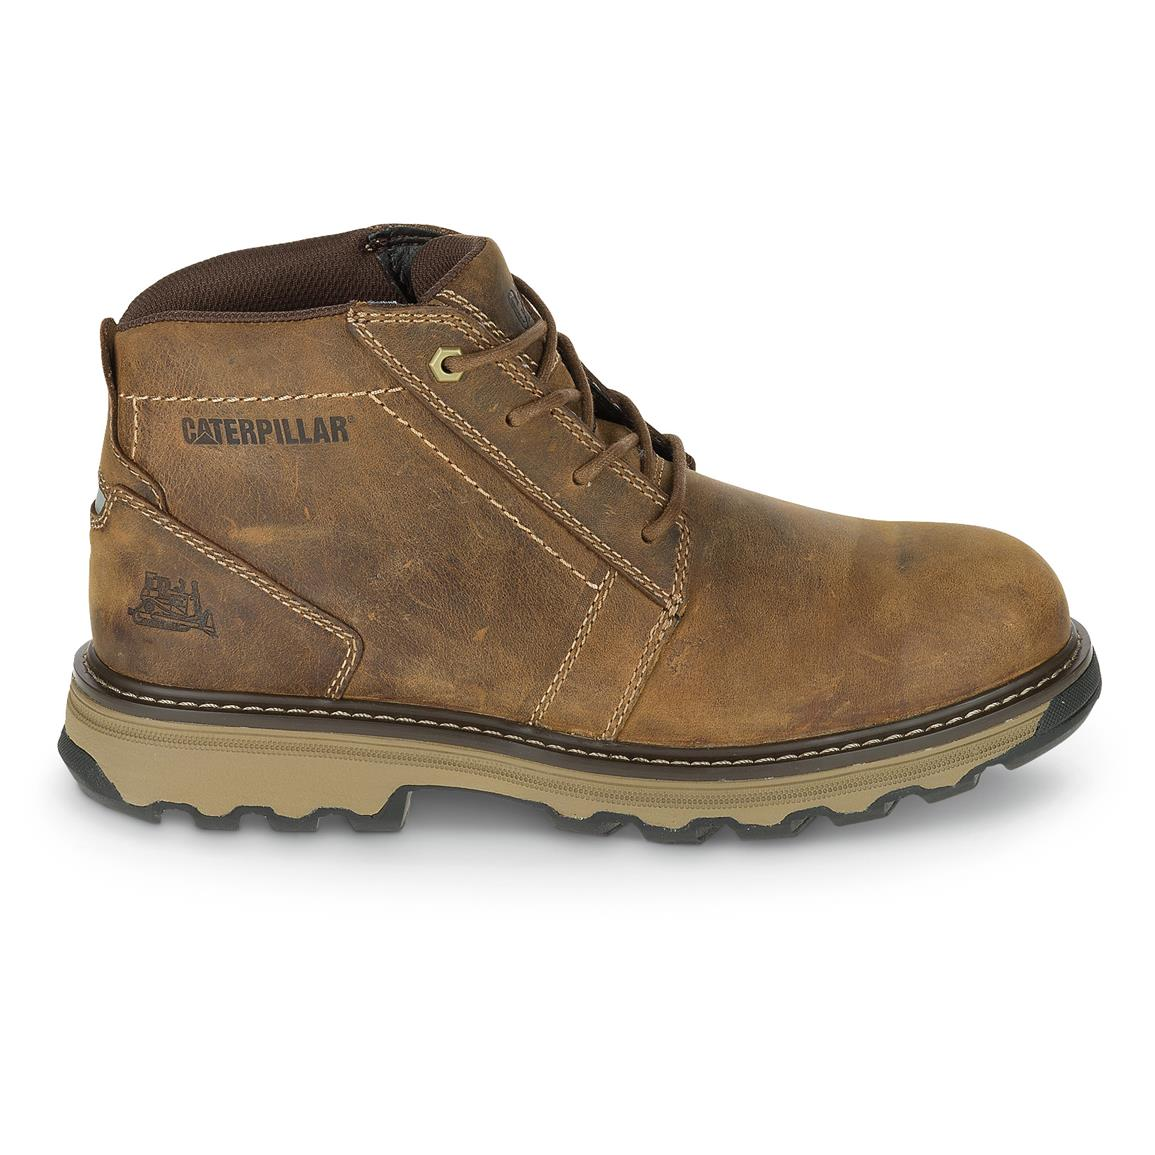 Cat Footwear Men's Parker ESD Work Boots, Dark Beige